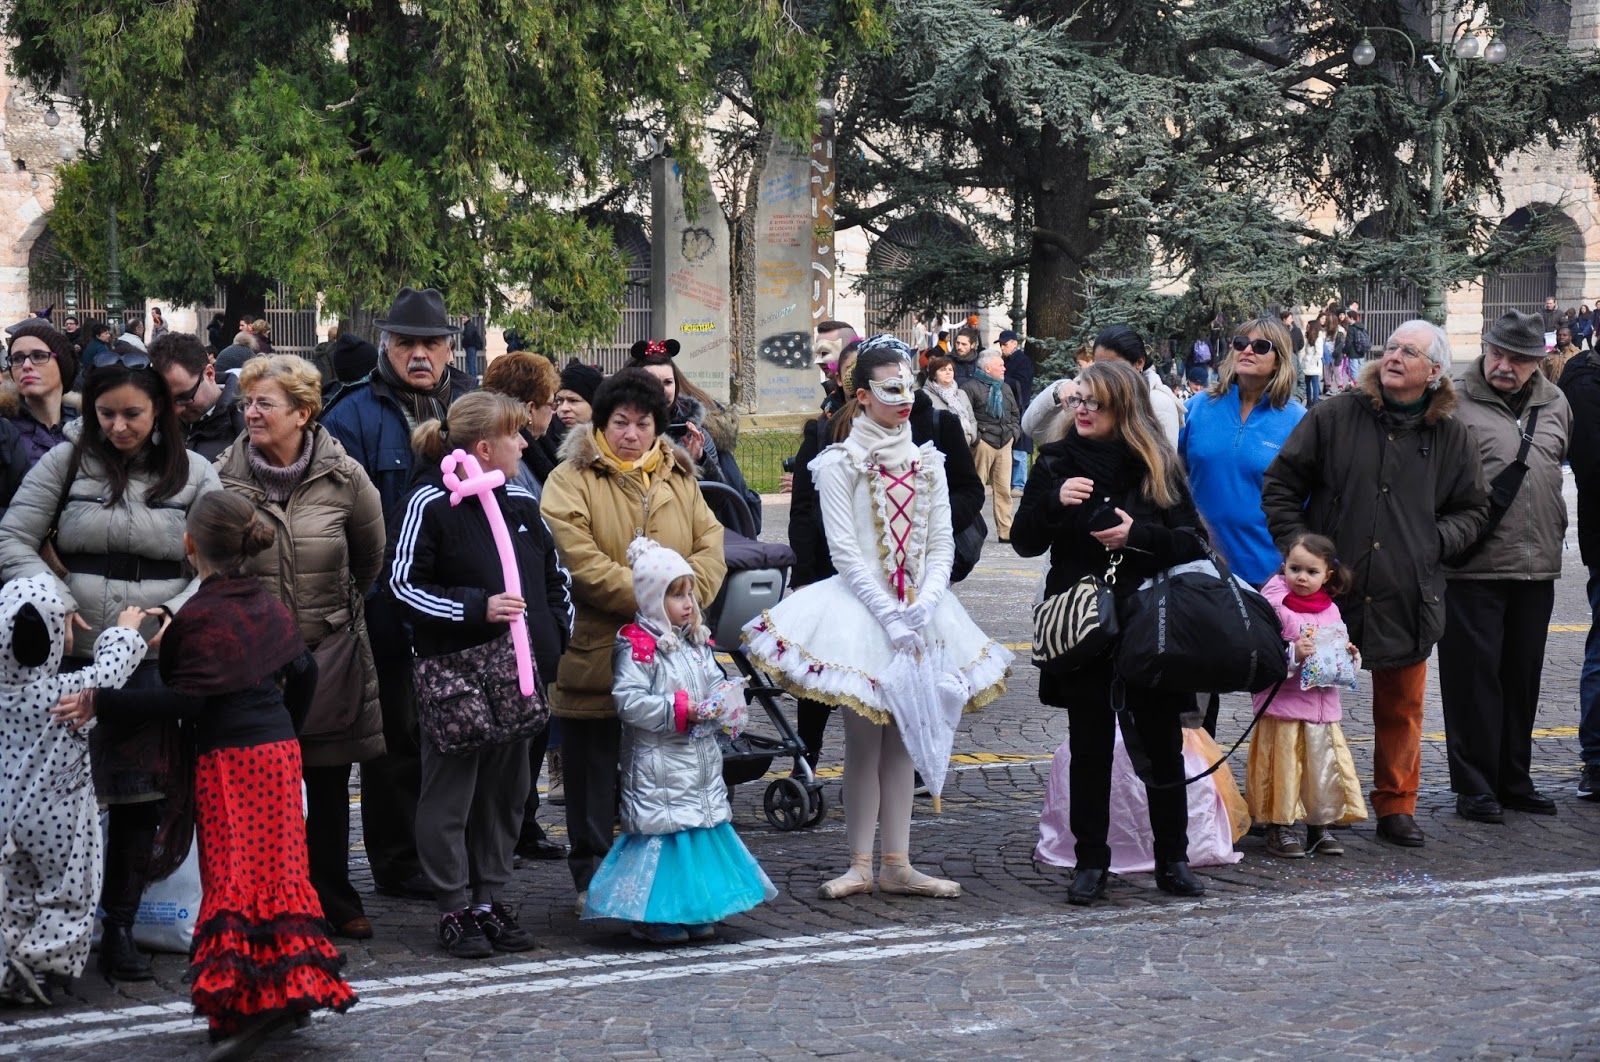 Spectators in masks - Verona Carnival